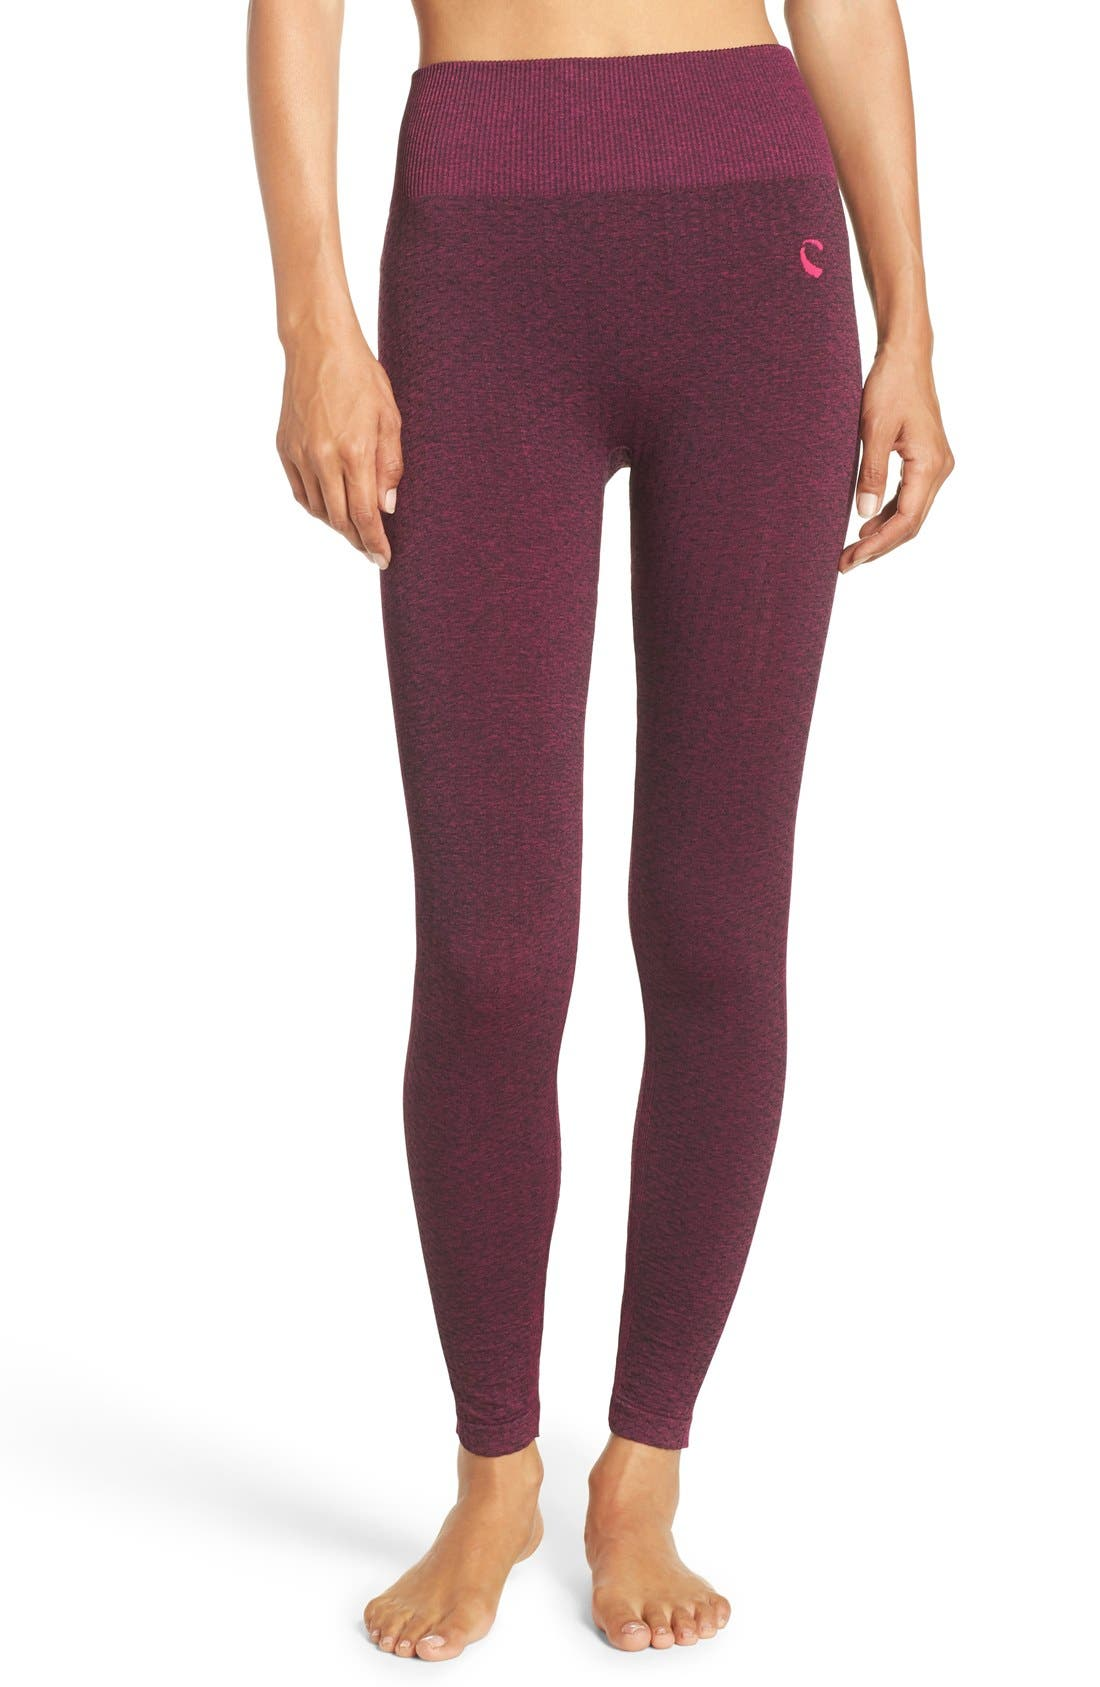 Climawear 'Trail Blazer' High Waist Leggings